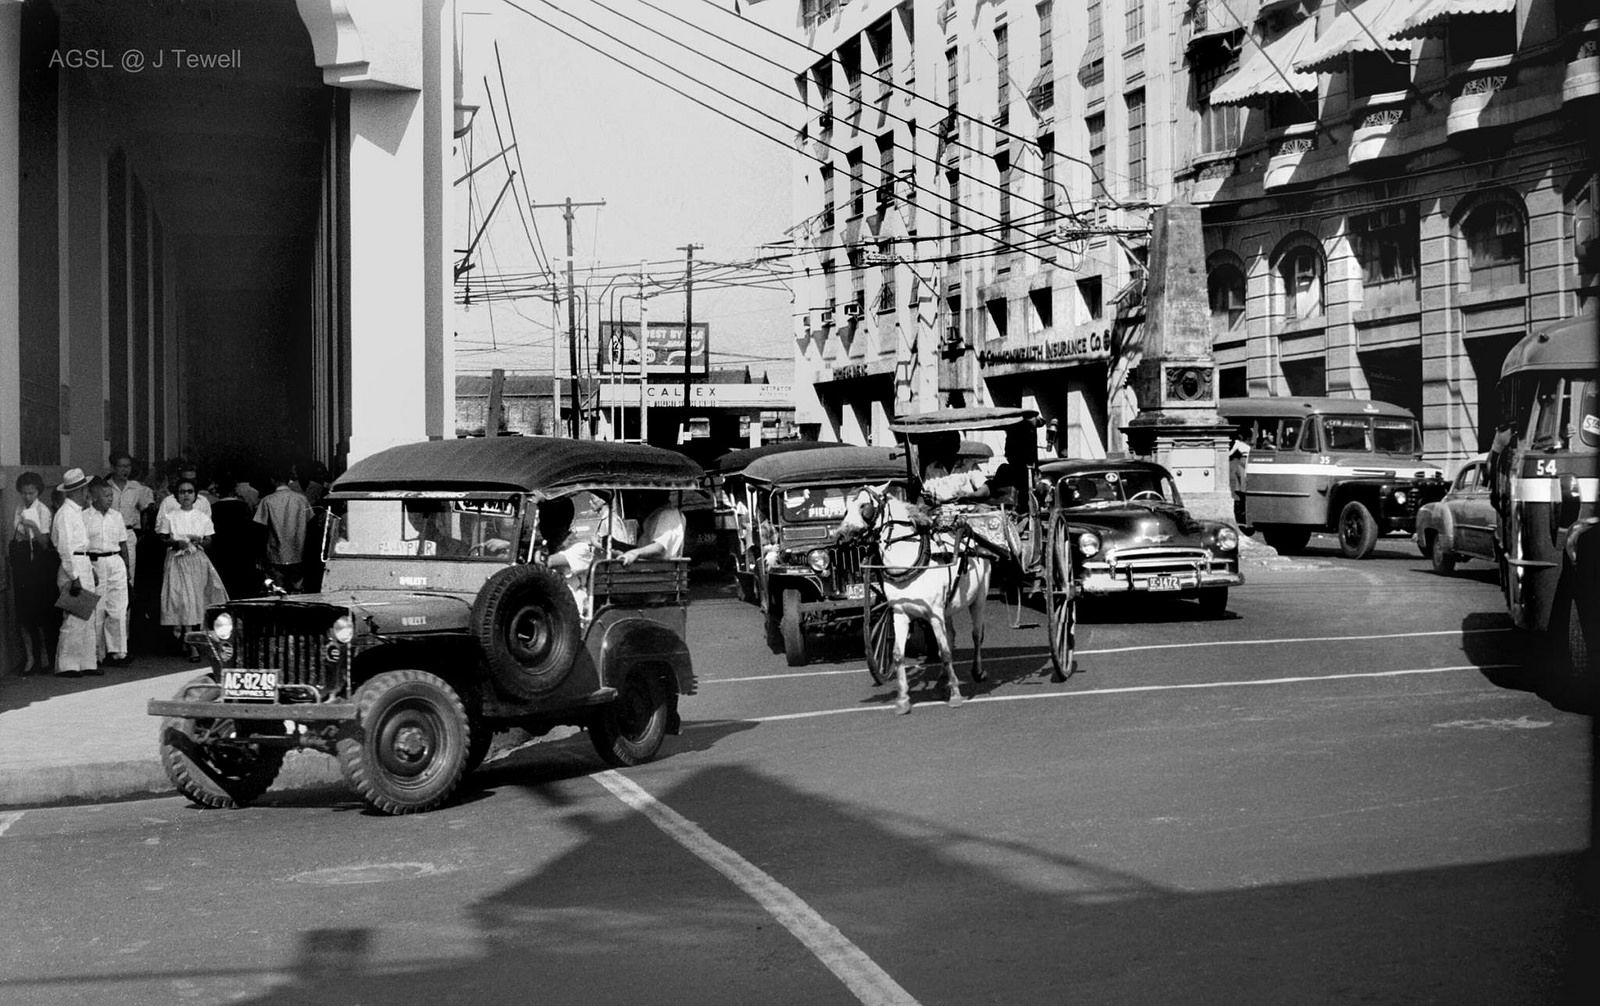 Pin On Everyday Life In The Early Days Of The Philippines